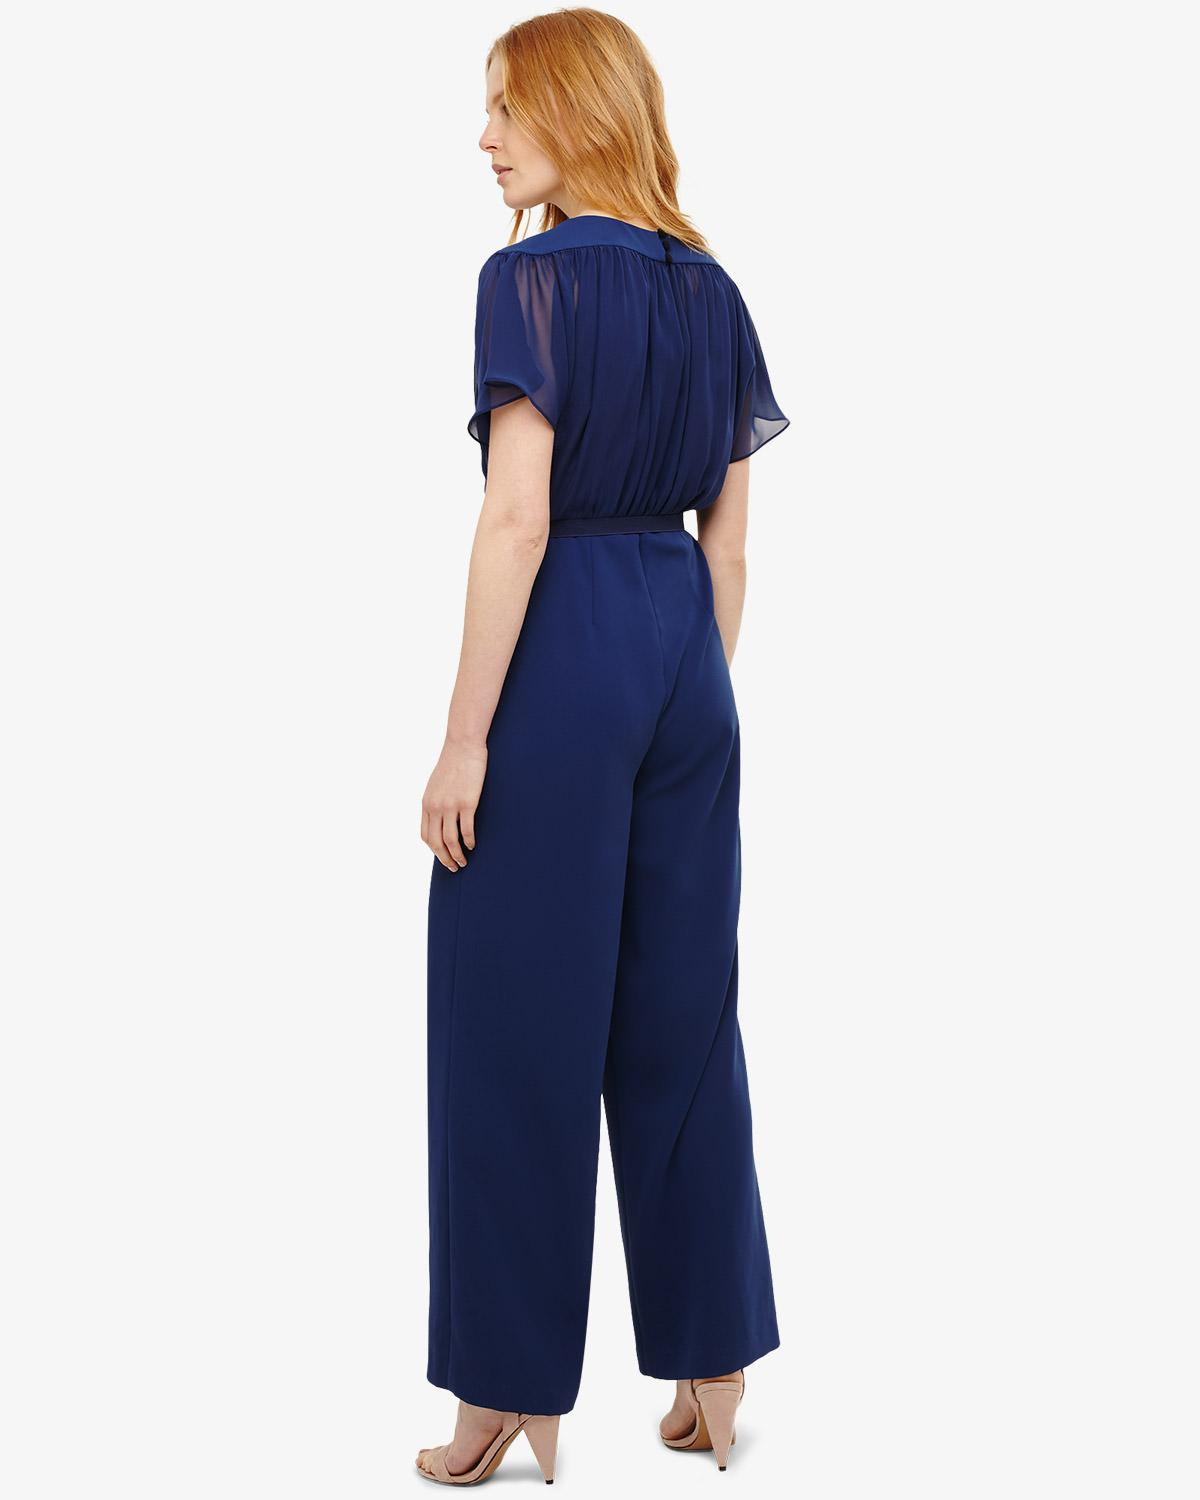 7e5bda905ac4 Phase Eight Alba Belted Jumpsuit in Blue - Lyst